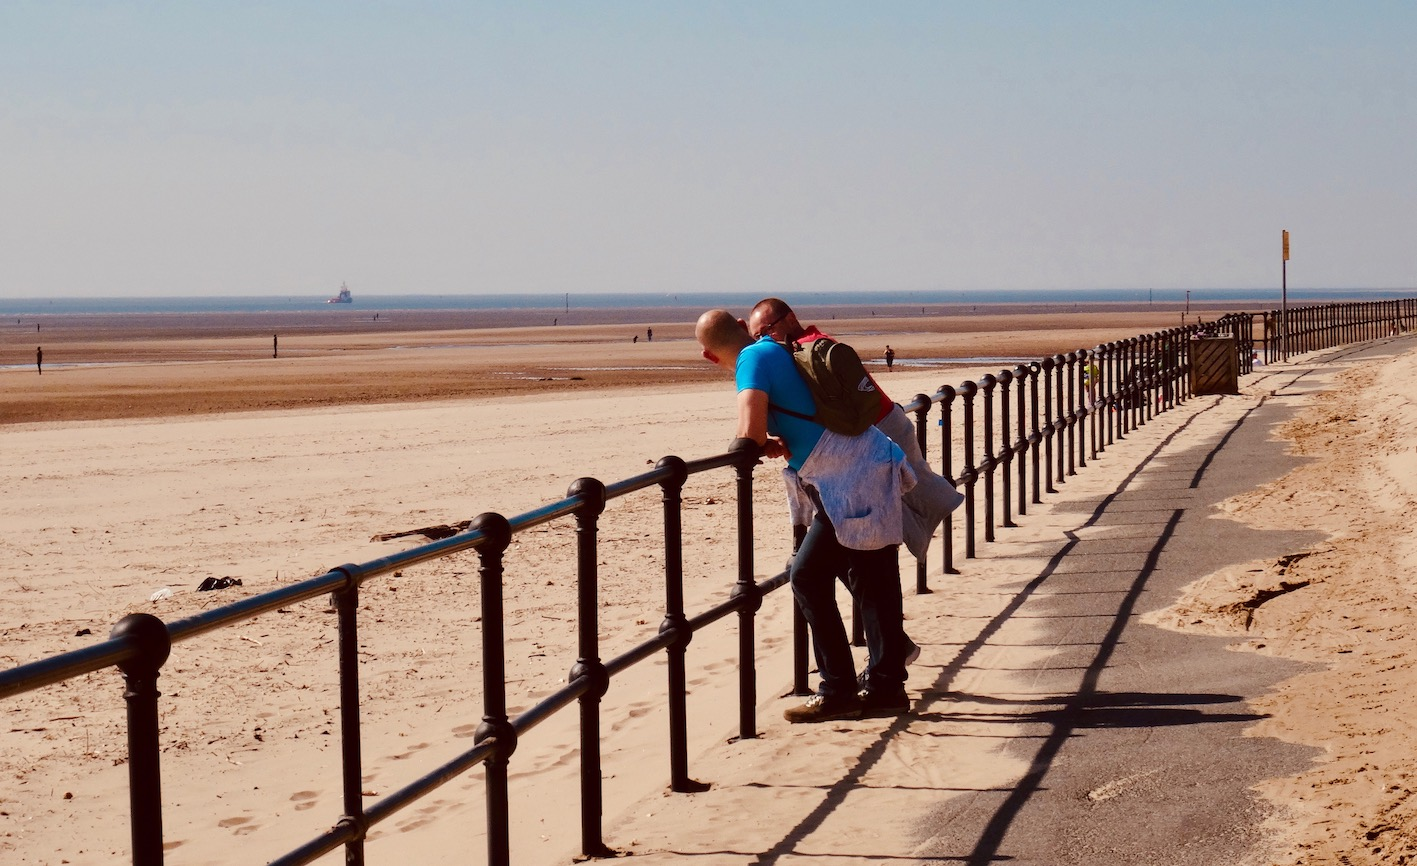 The Coastal path at Crosby Beach Liverpool.